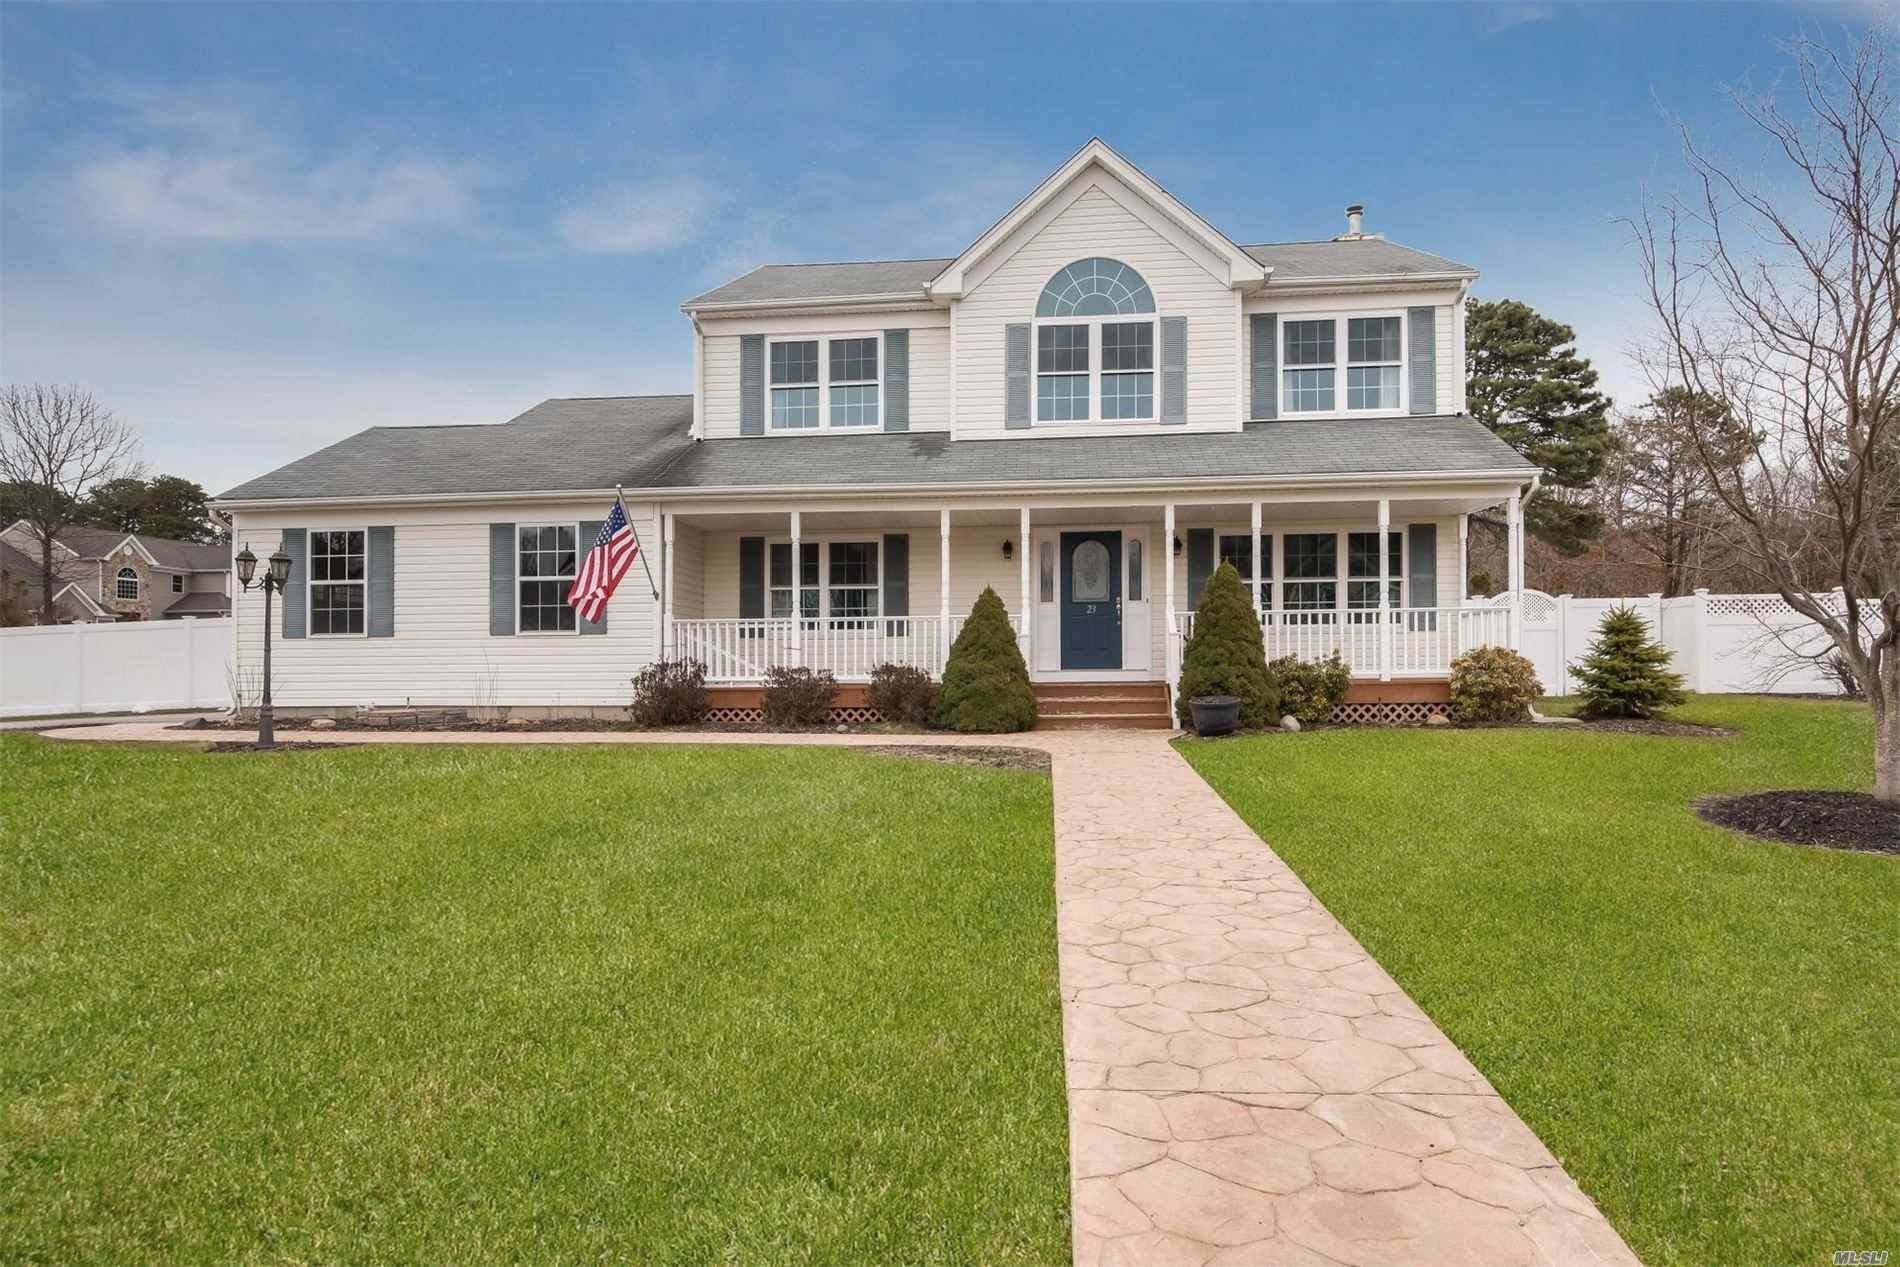 23 Williamsburg Way - Yaphank, New York